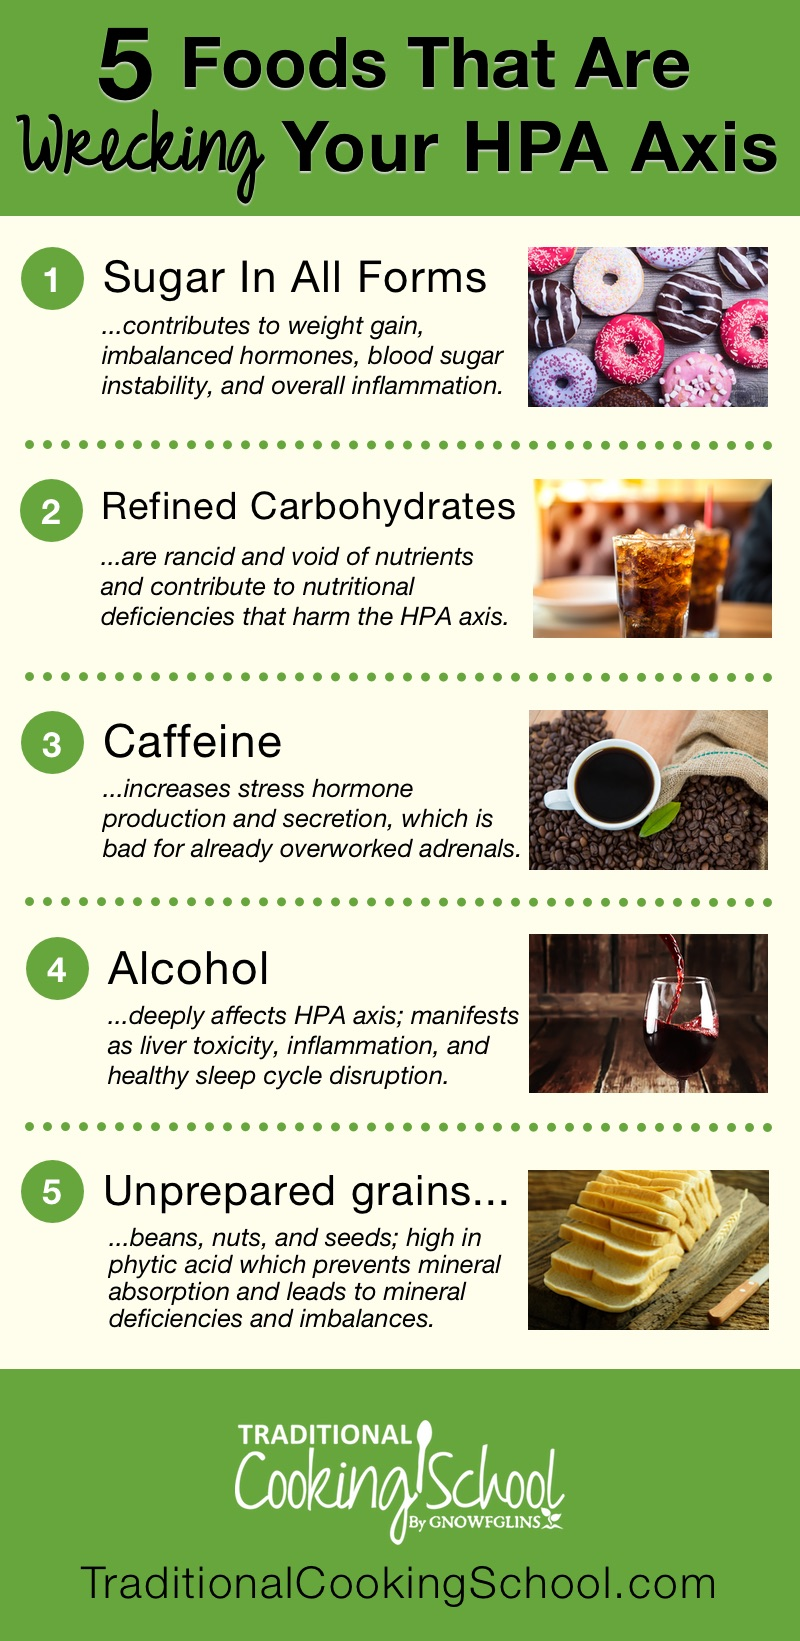 infographic of 5 foods that wreck the HPA axis